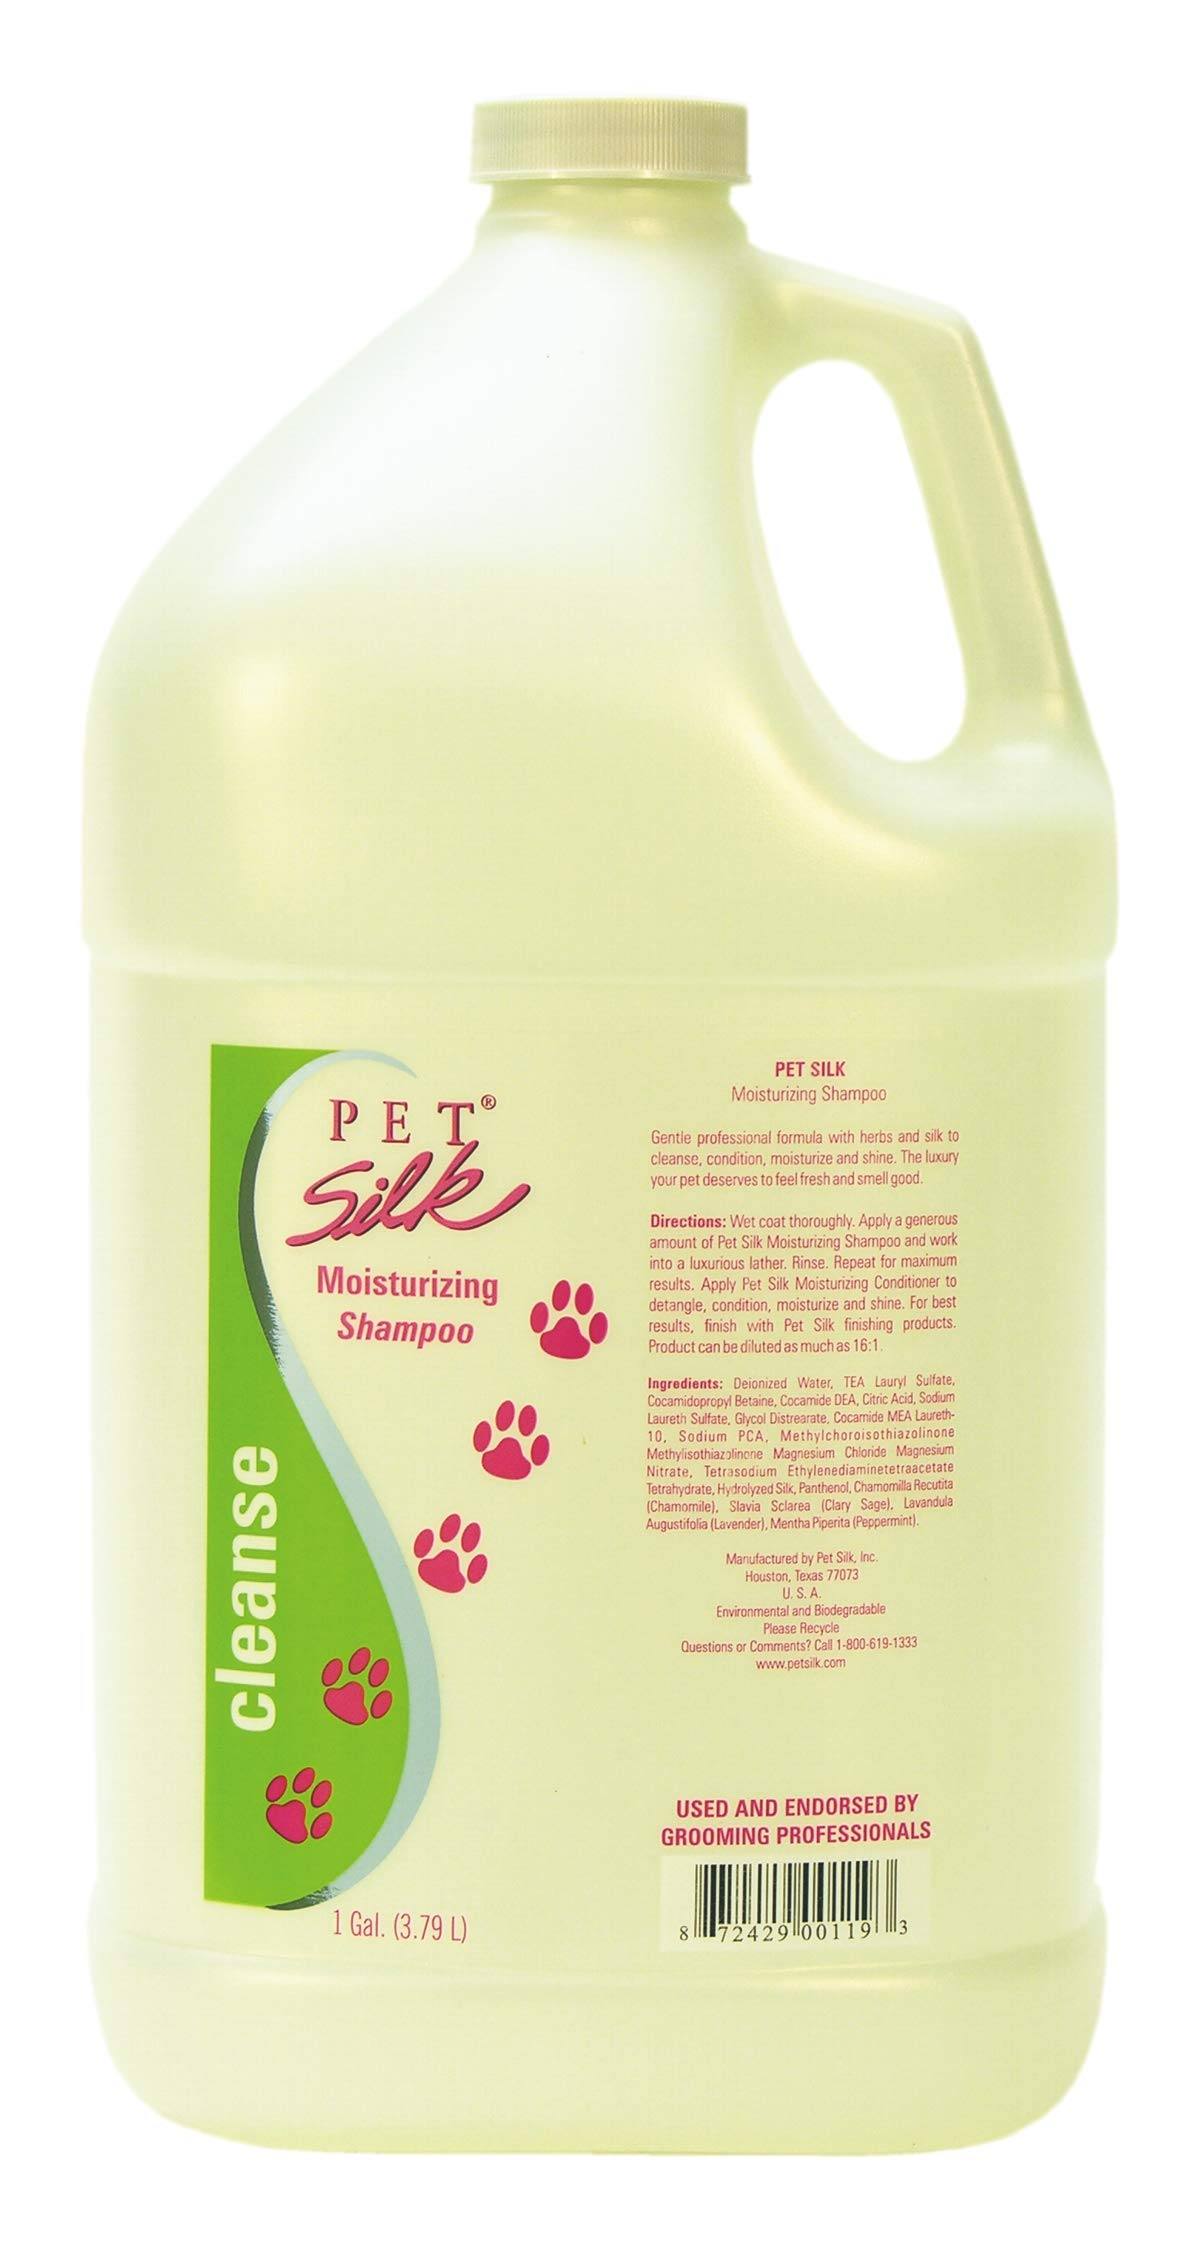 Pet Silk Moisturizing Shampoo (1 Gallon) - Dogs Moisturizing Shampoo for Dry, Itchy Skin - Infused with Silk, Vitamin E & Humectants - Pet Grooming Shampoo for Cats, Rabbits & Horse by PET SILK